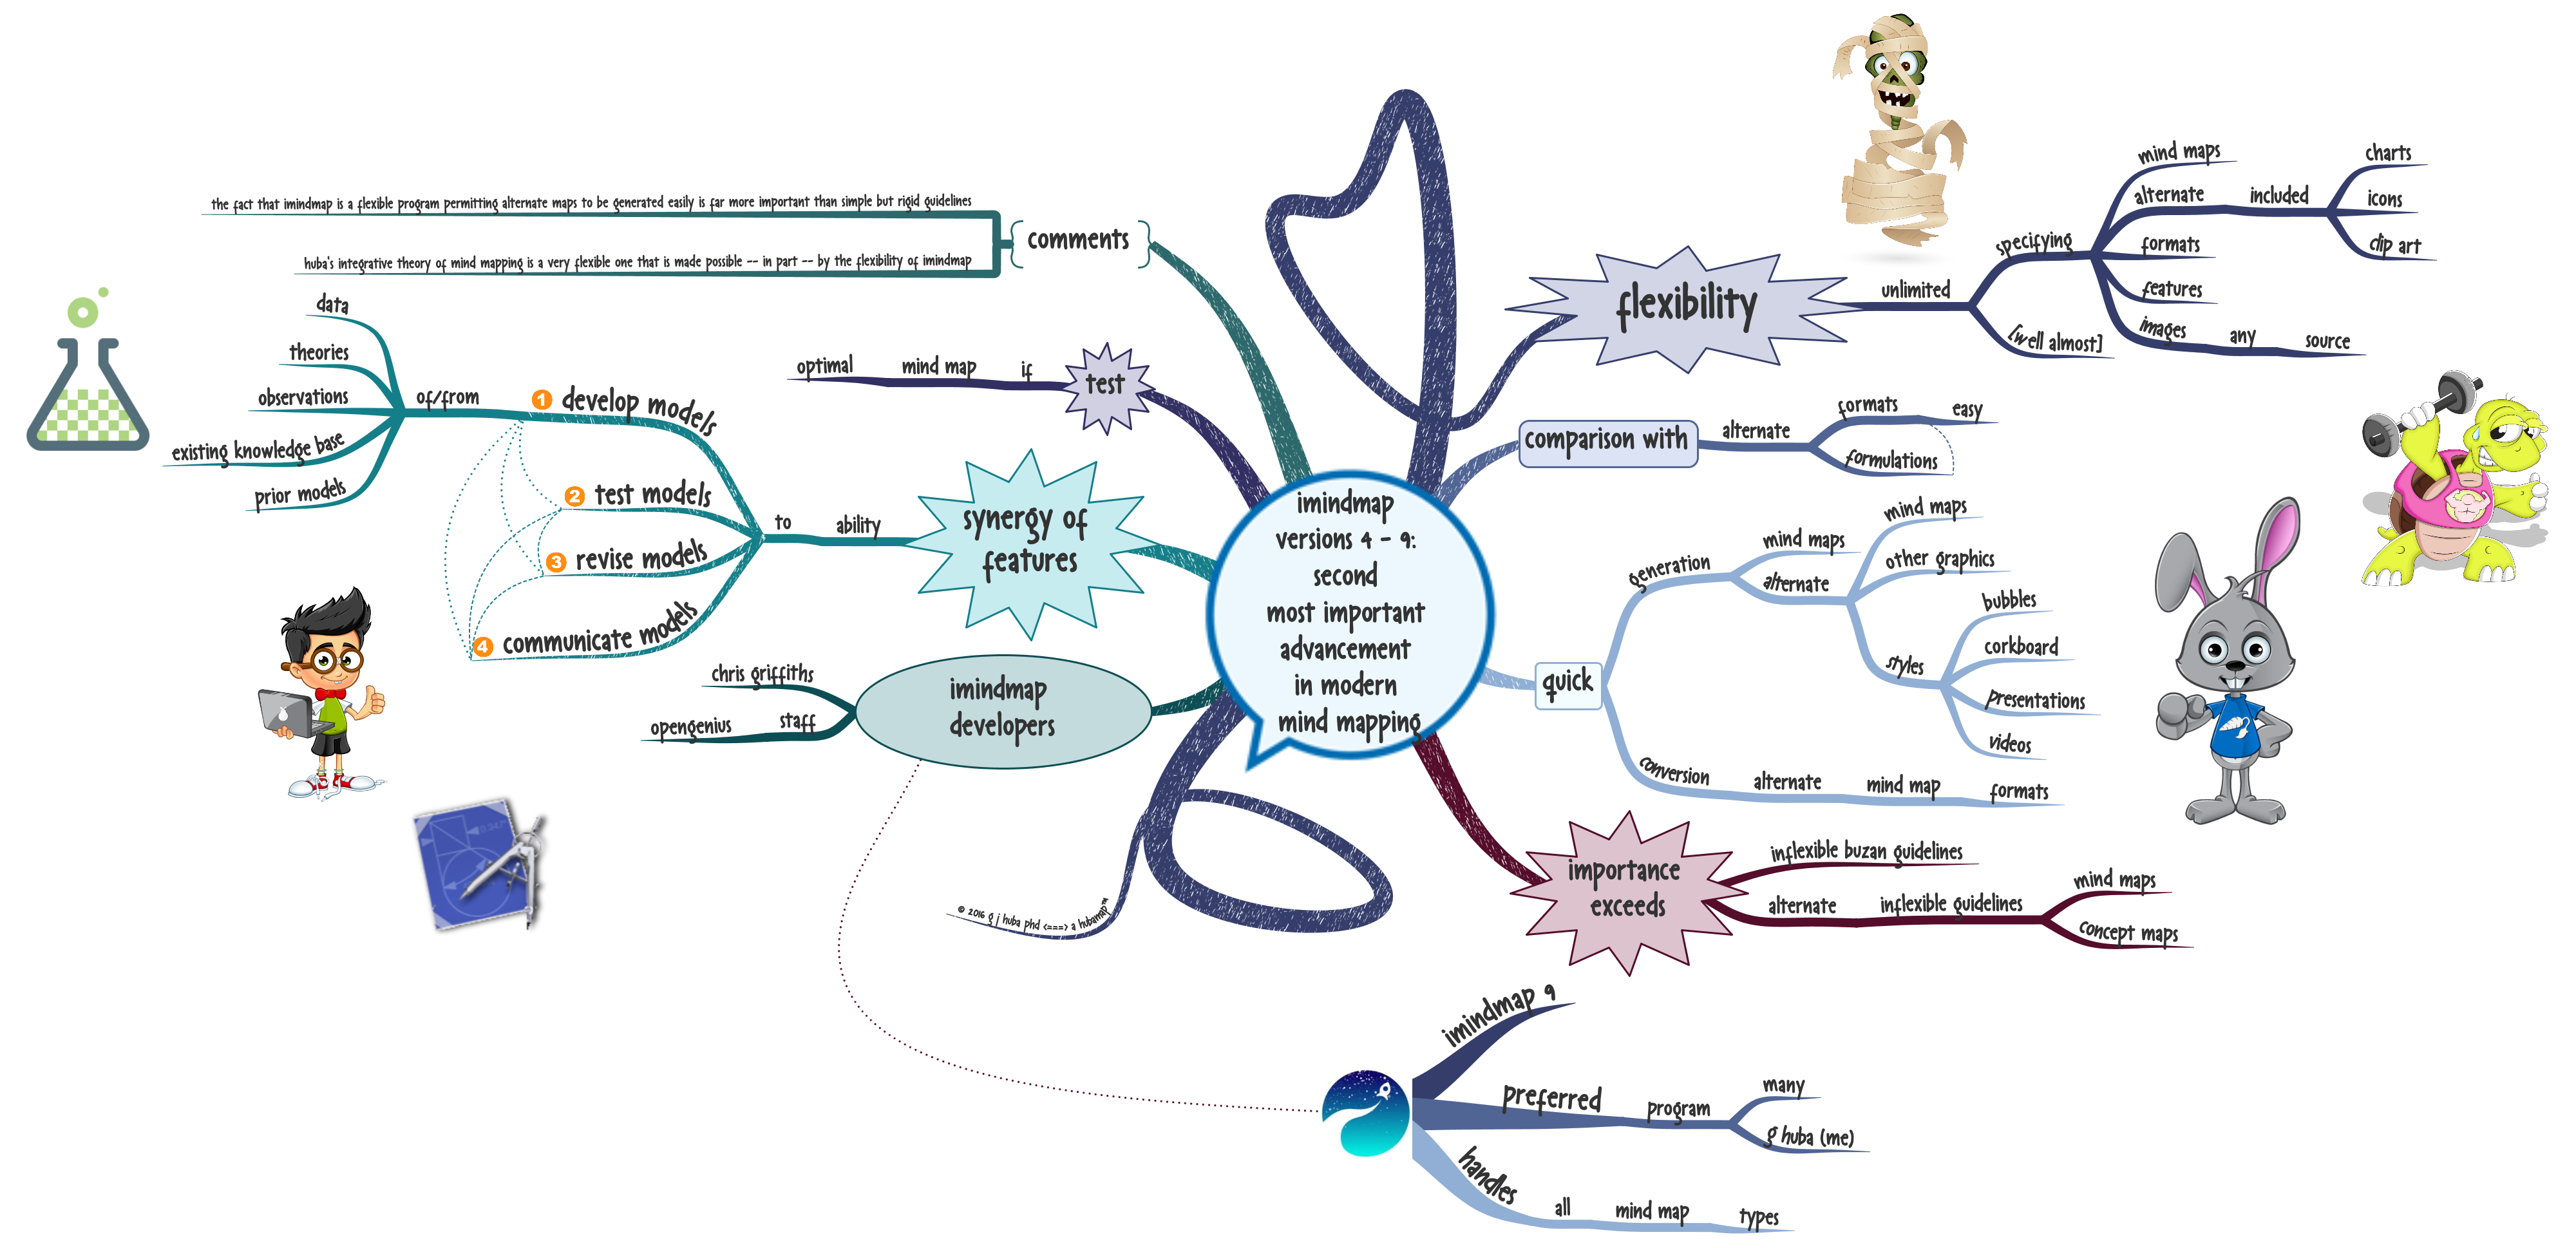 imindmap versions 4 - 9 second most important advancement in modern mind mapping